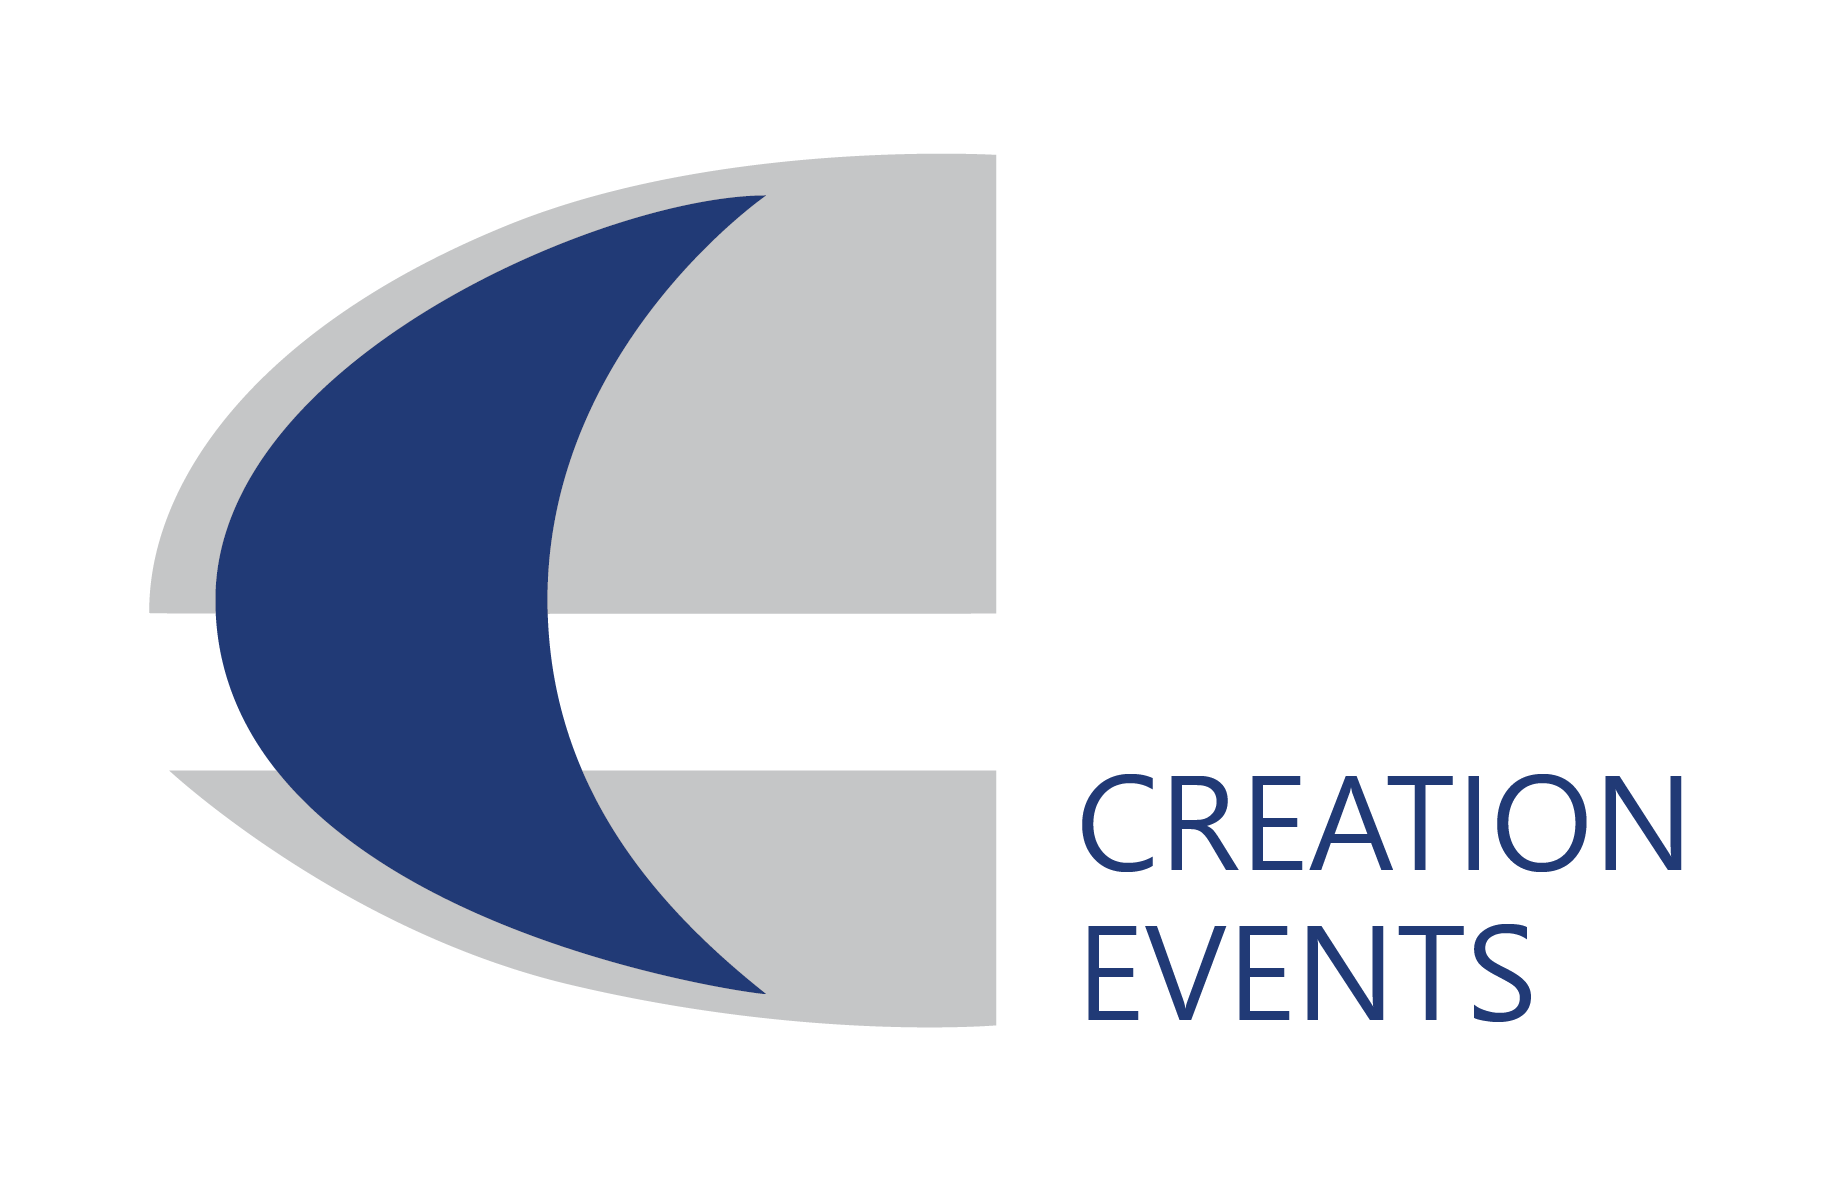 CREATION EVENTS